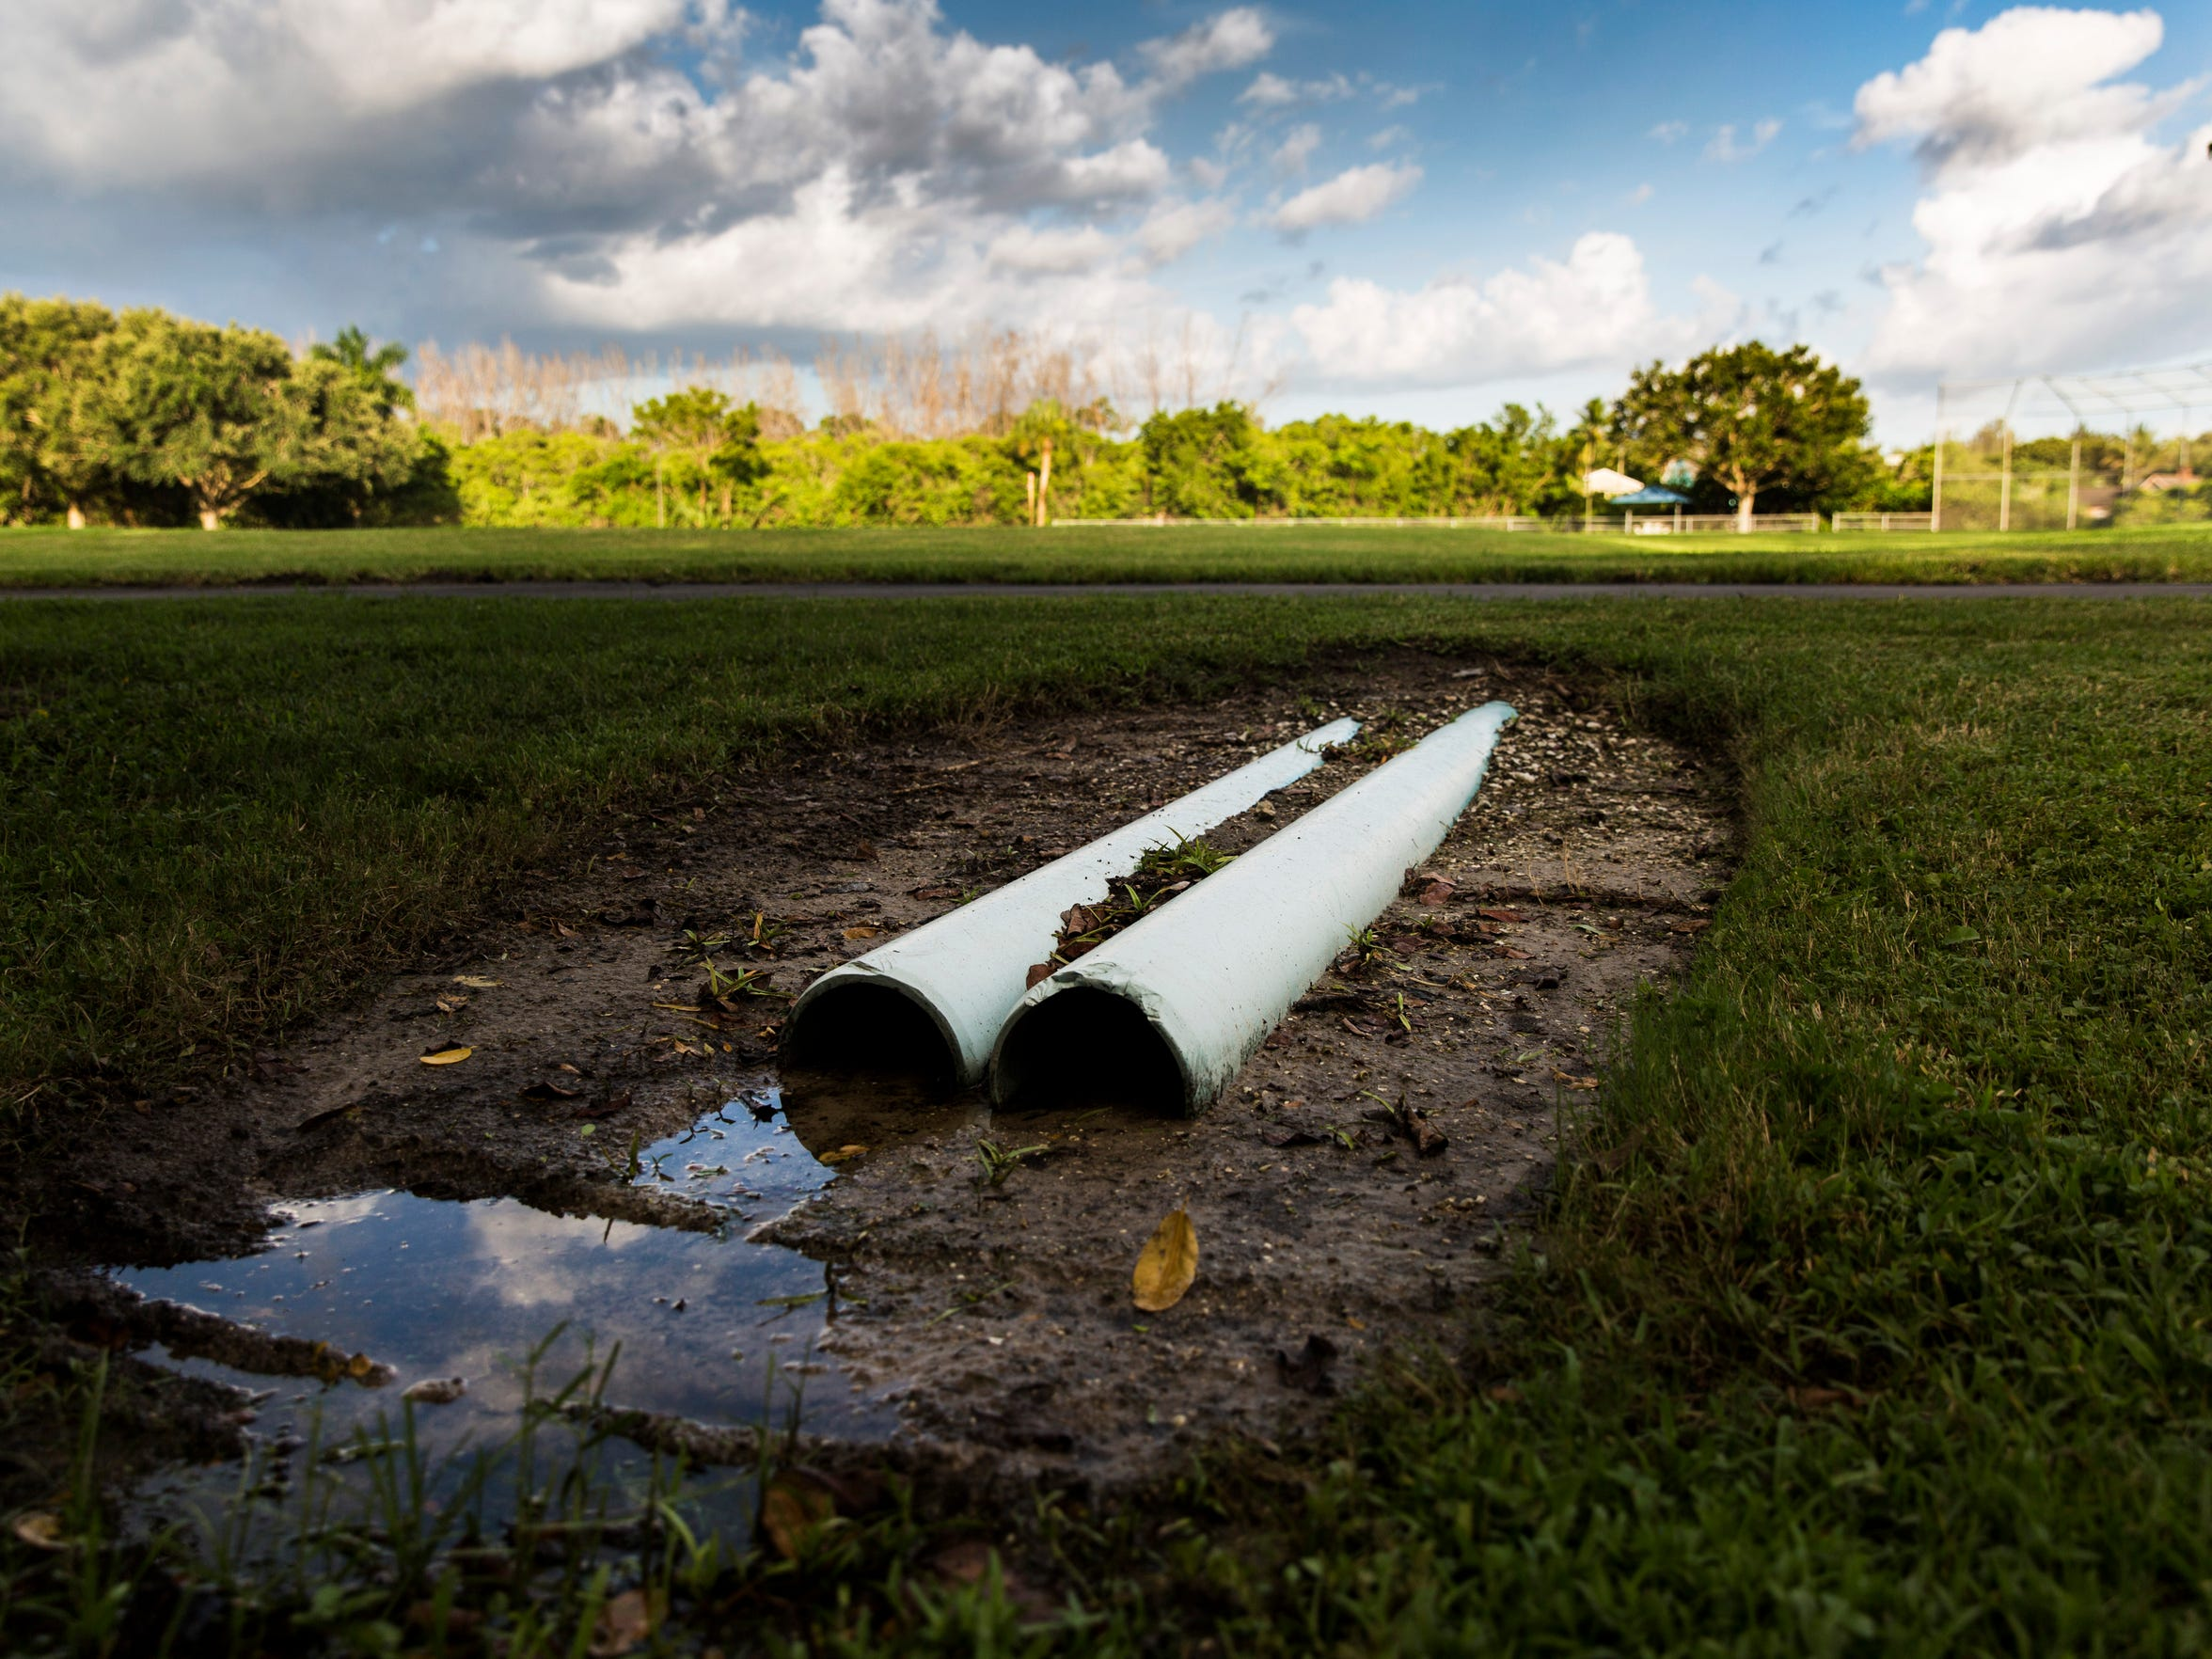 Pipes lay exposed to the side of Anthony Park on Monday, Aug. 7, 2017. The city never engineered the park's open field to drain, so it stays soggy and unusable after it rains.